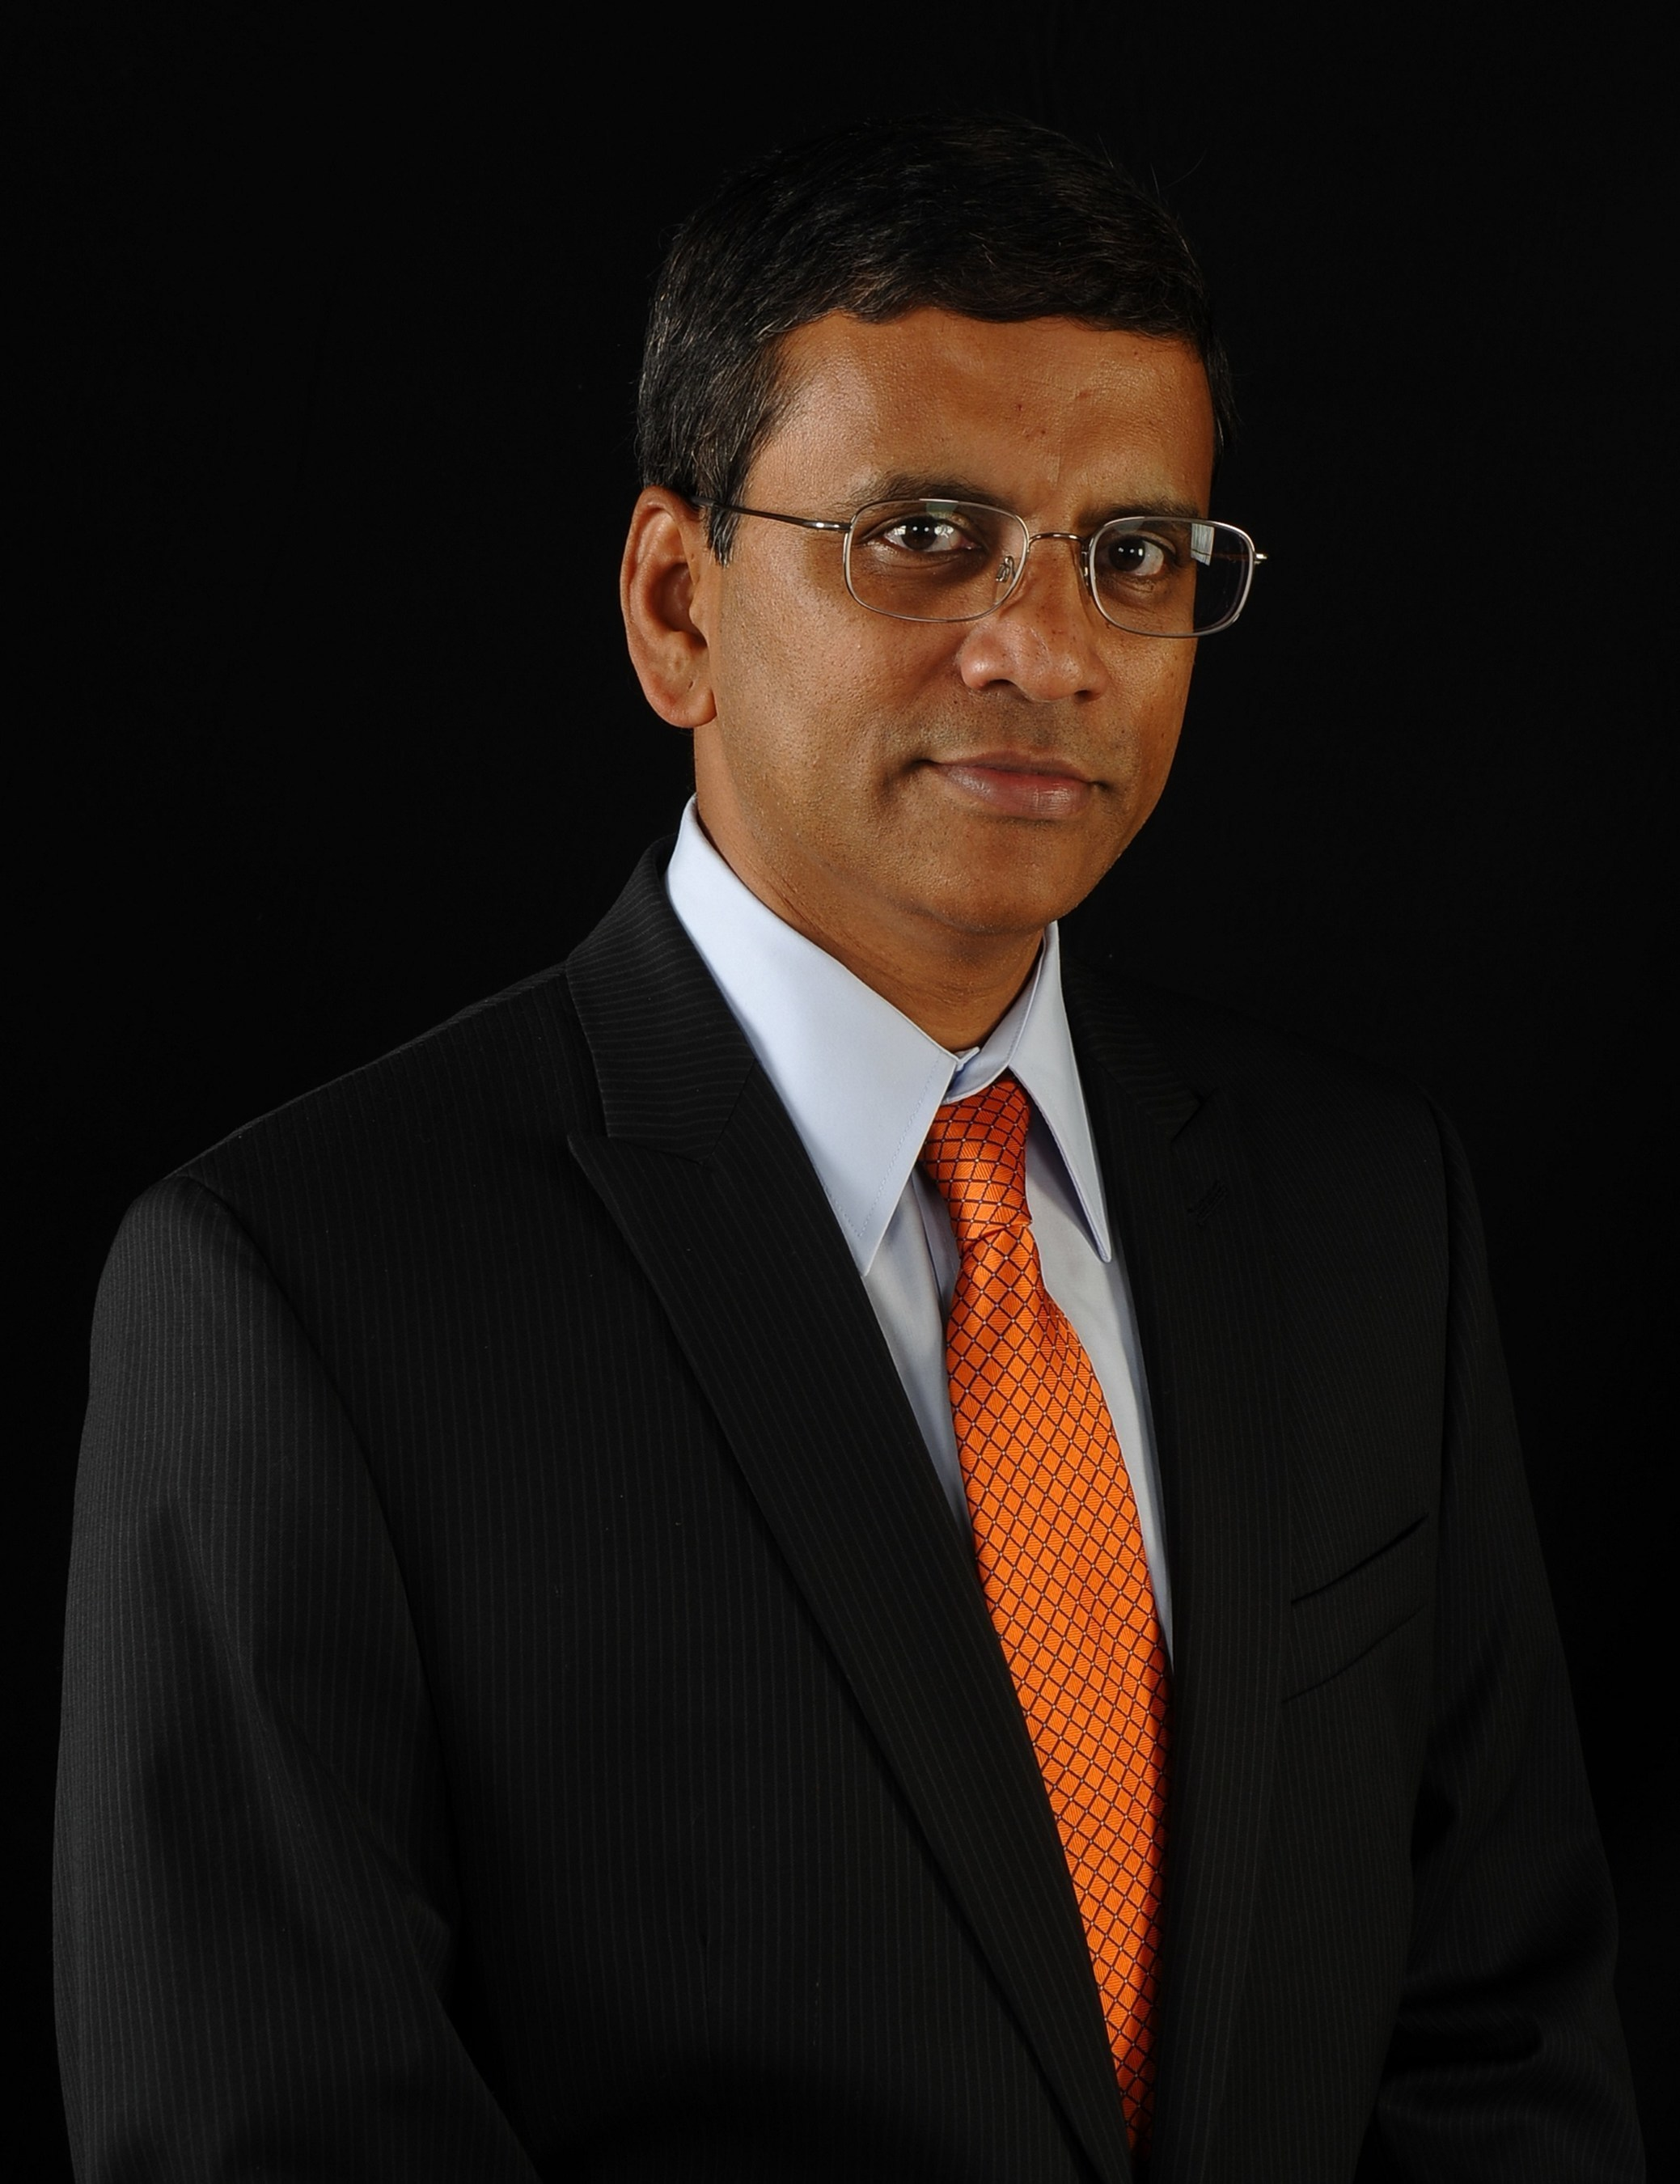 Madhu Madheswaran to Lead Advanced Product Development for Fontaine Connection Group